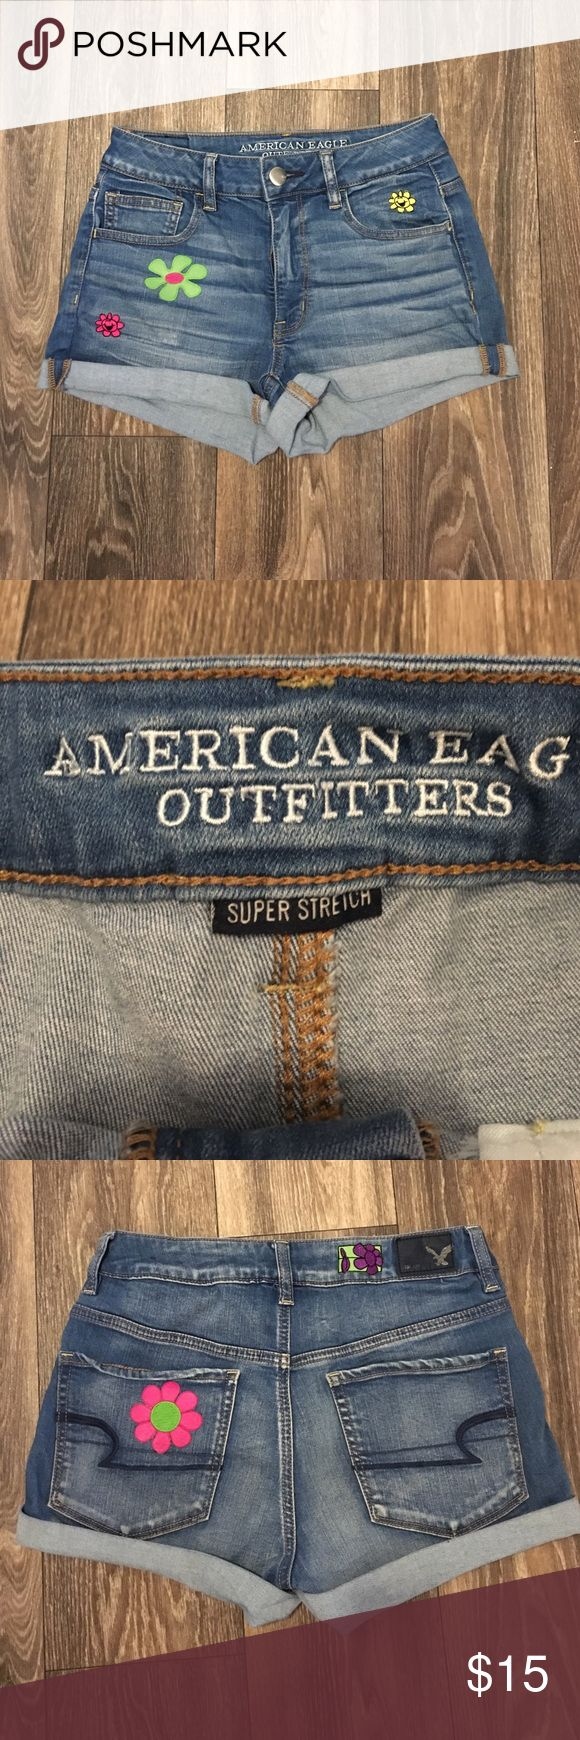 AEO shorts American eagle shorts with iron on flower patches. Worn once very gently. American Eagle Outfitters Shorts Jean Shorts